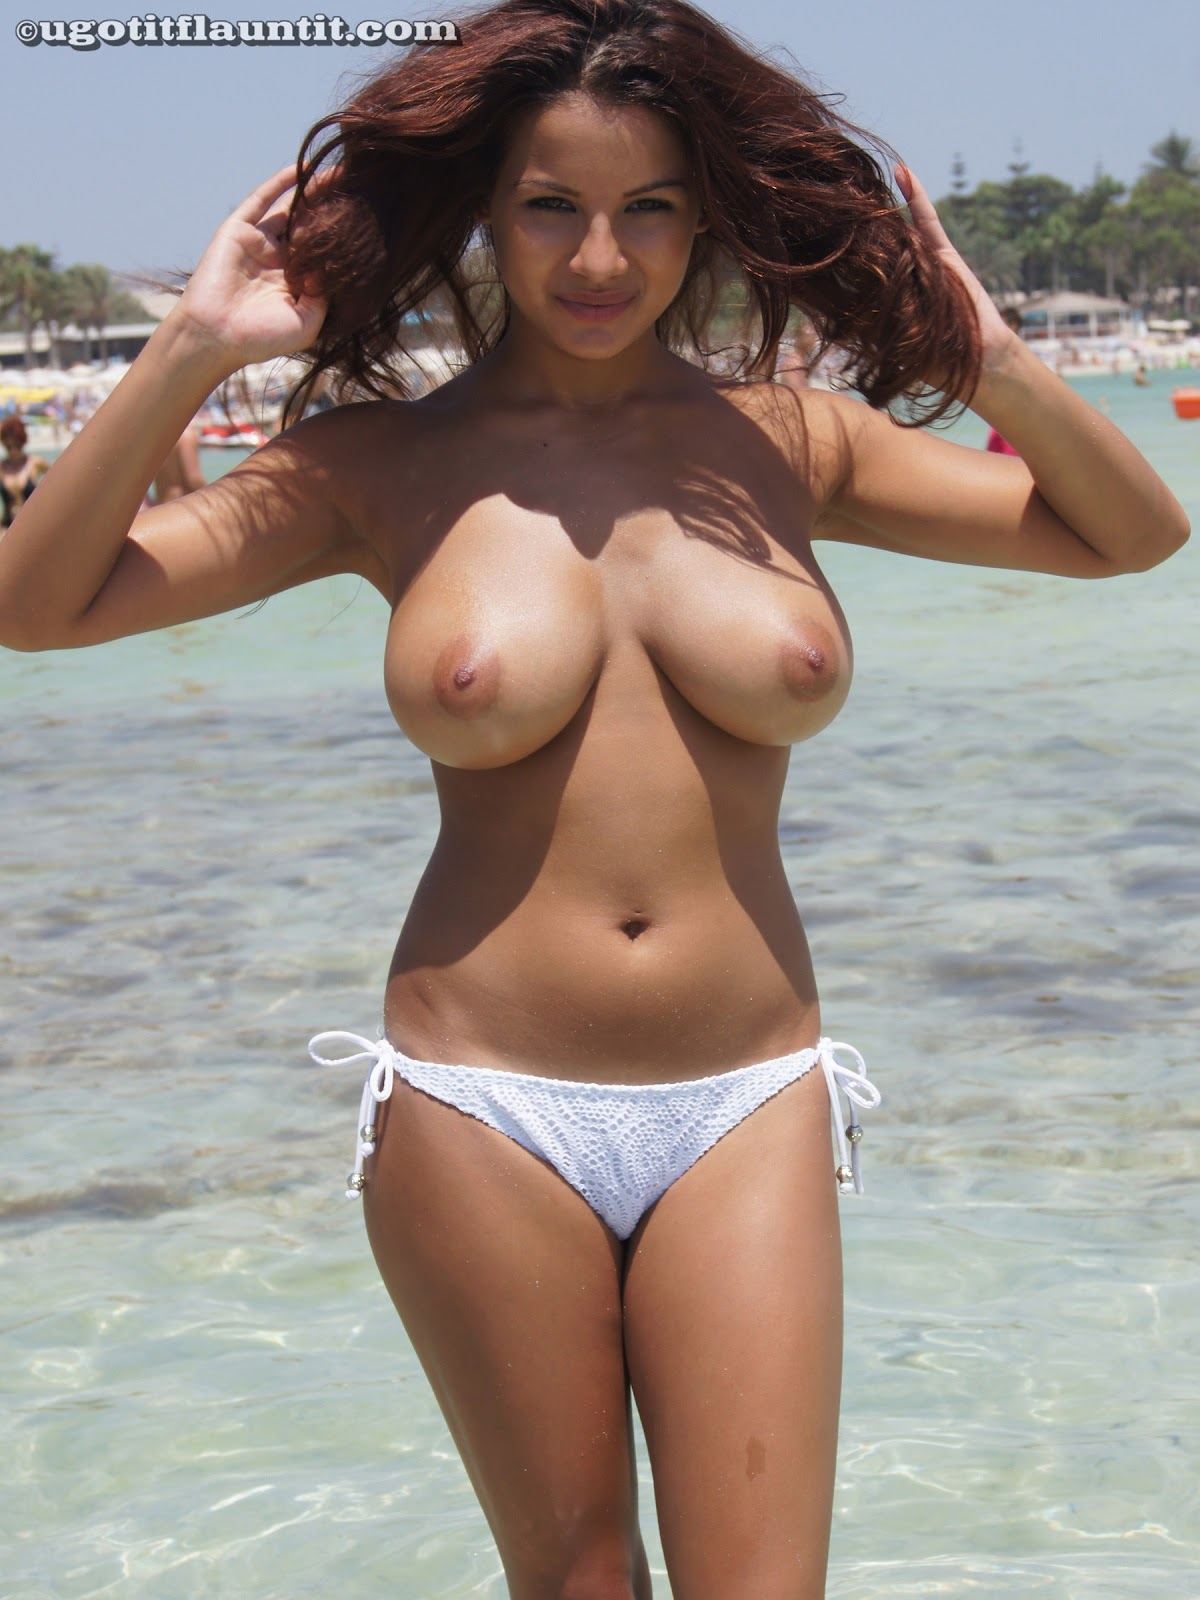 Love huge hot boobs topless on the beach more